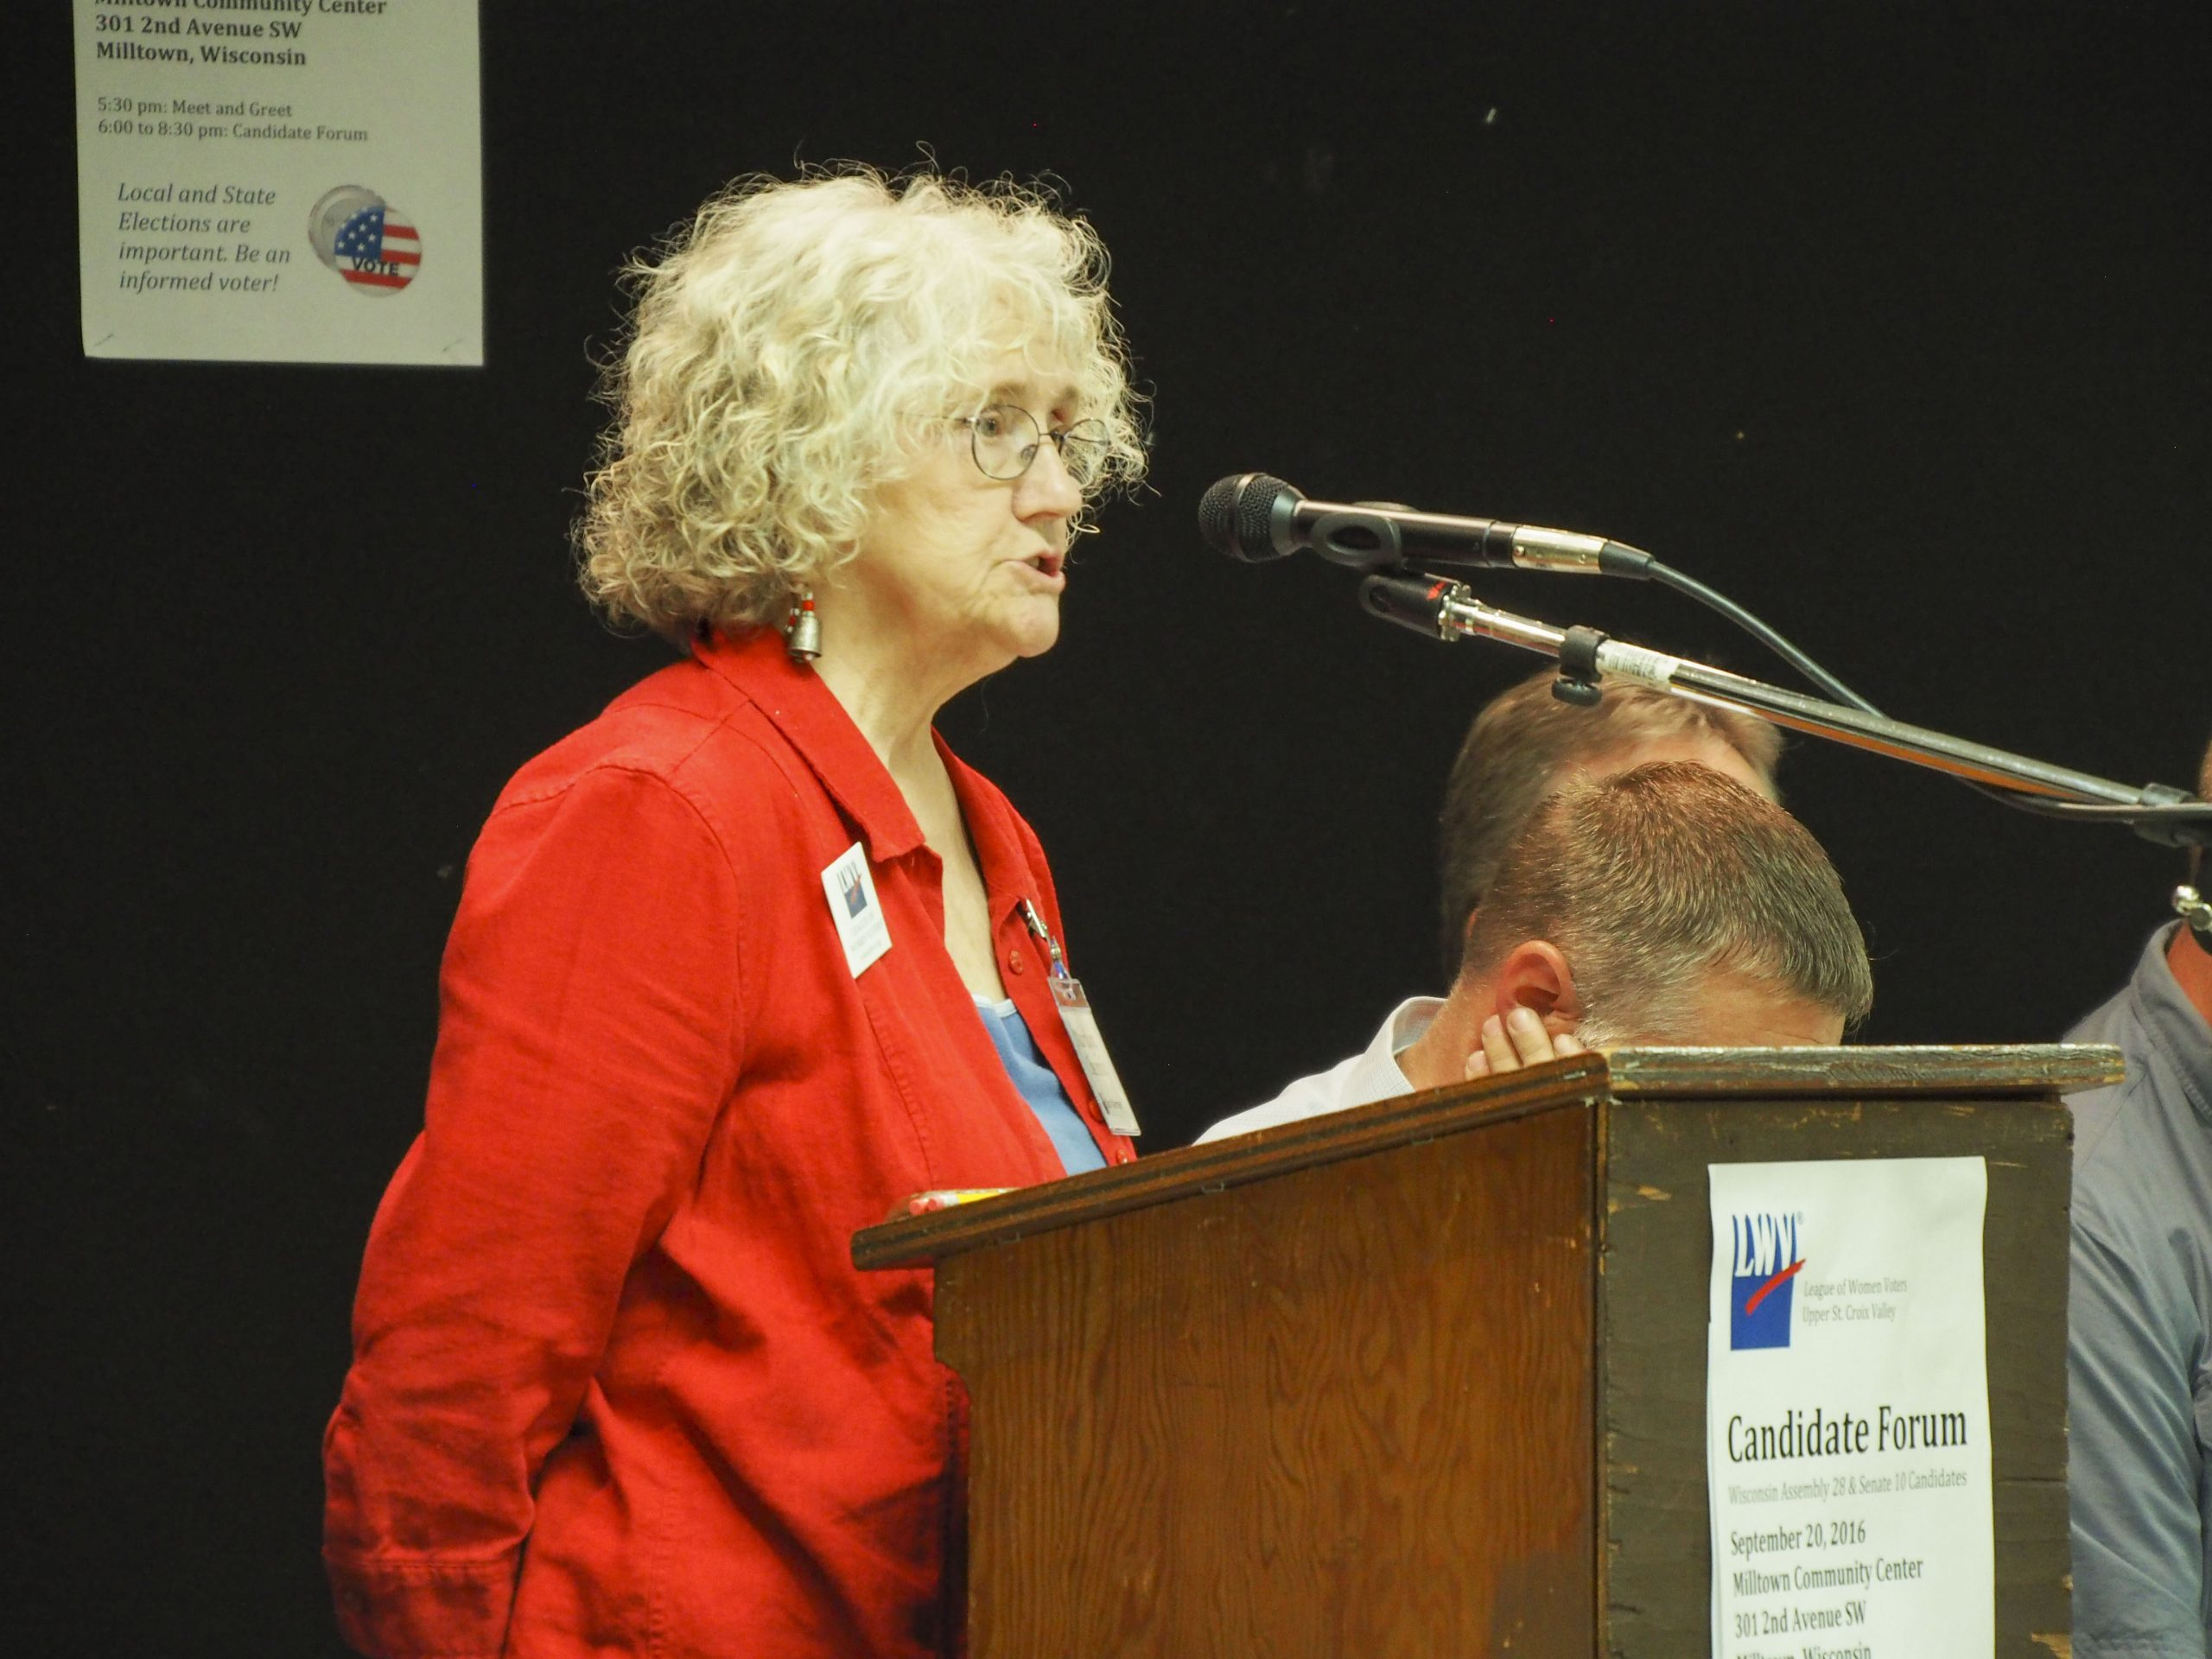 A woman stands at a microphone